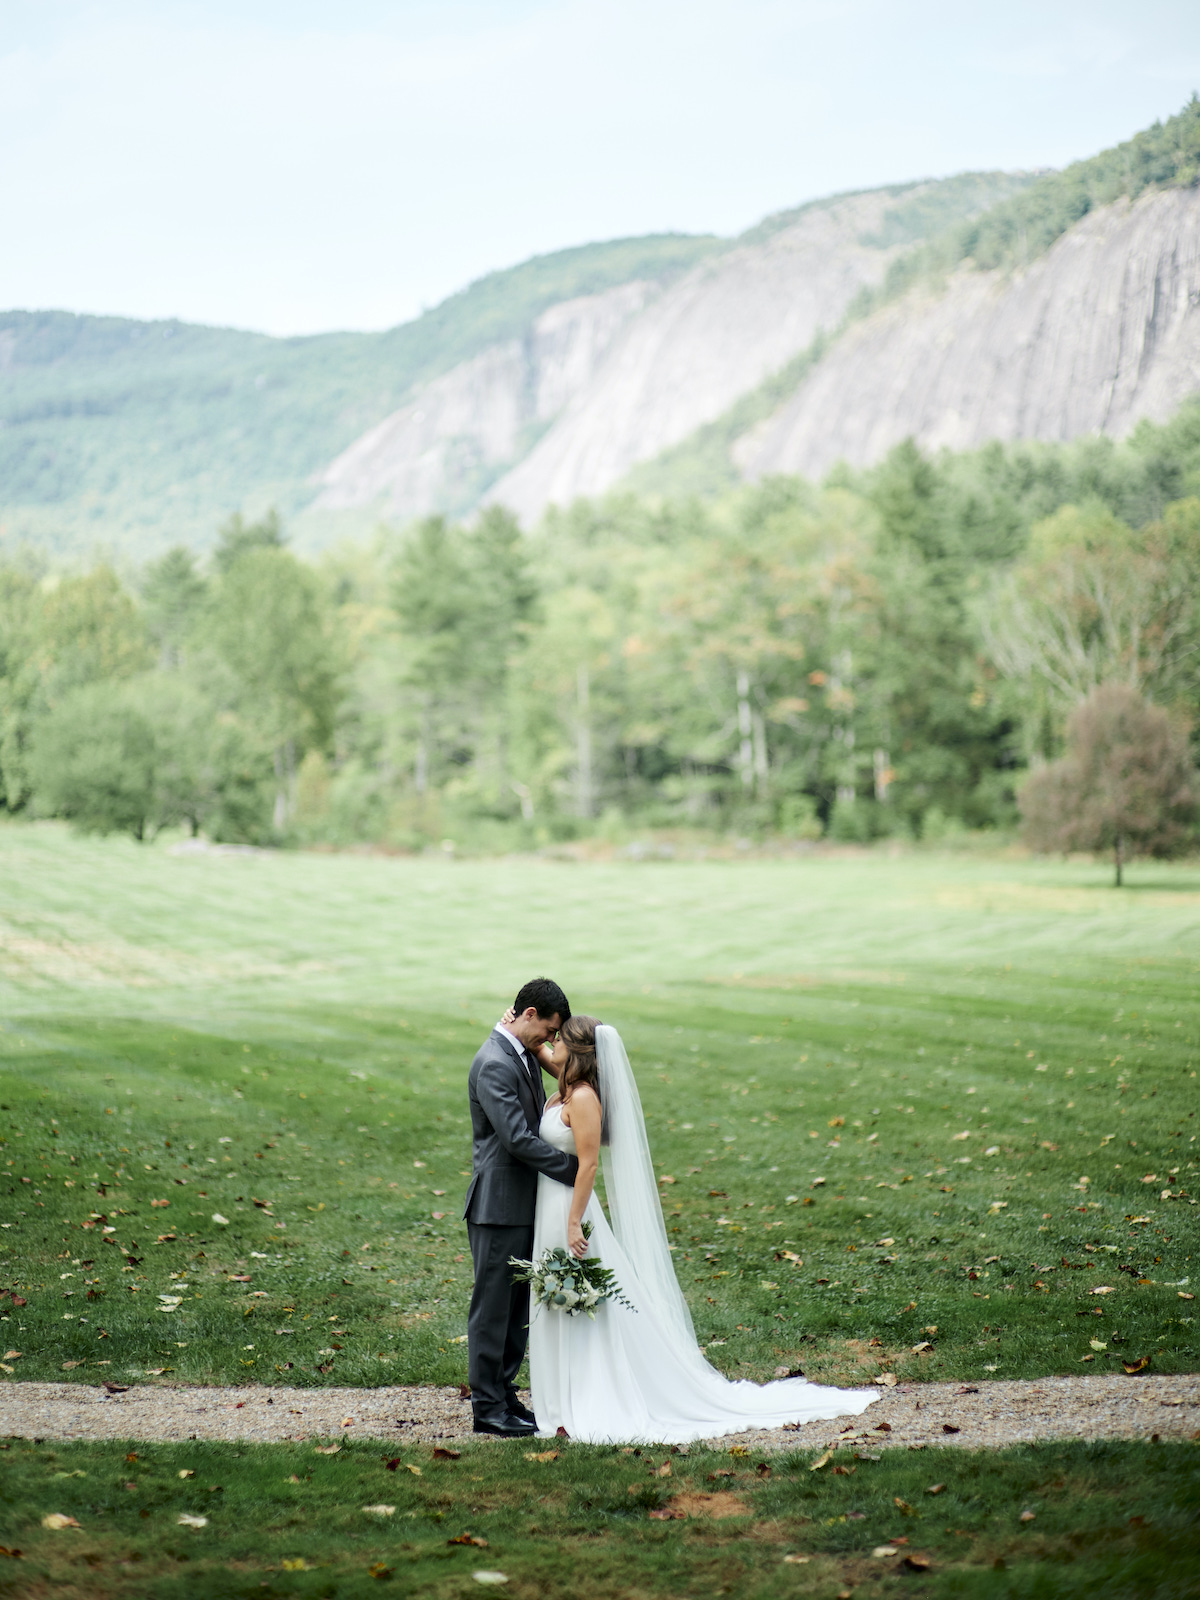 Bride and groom portrait with natural scenery